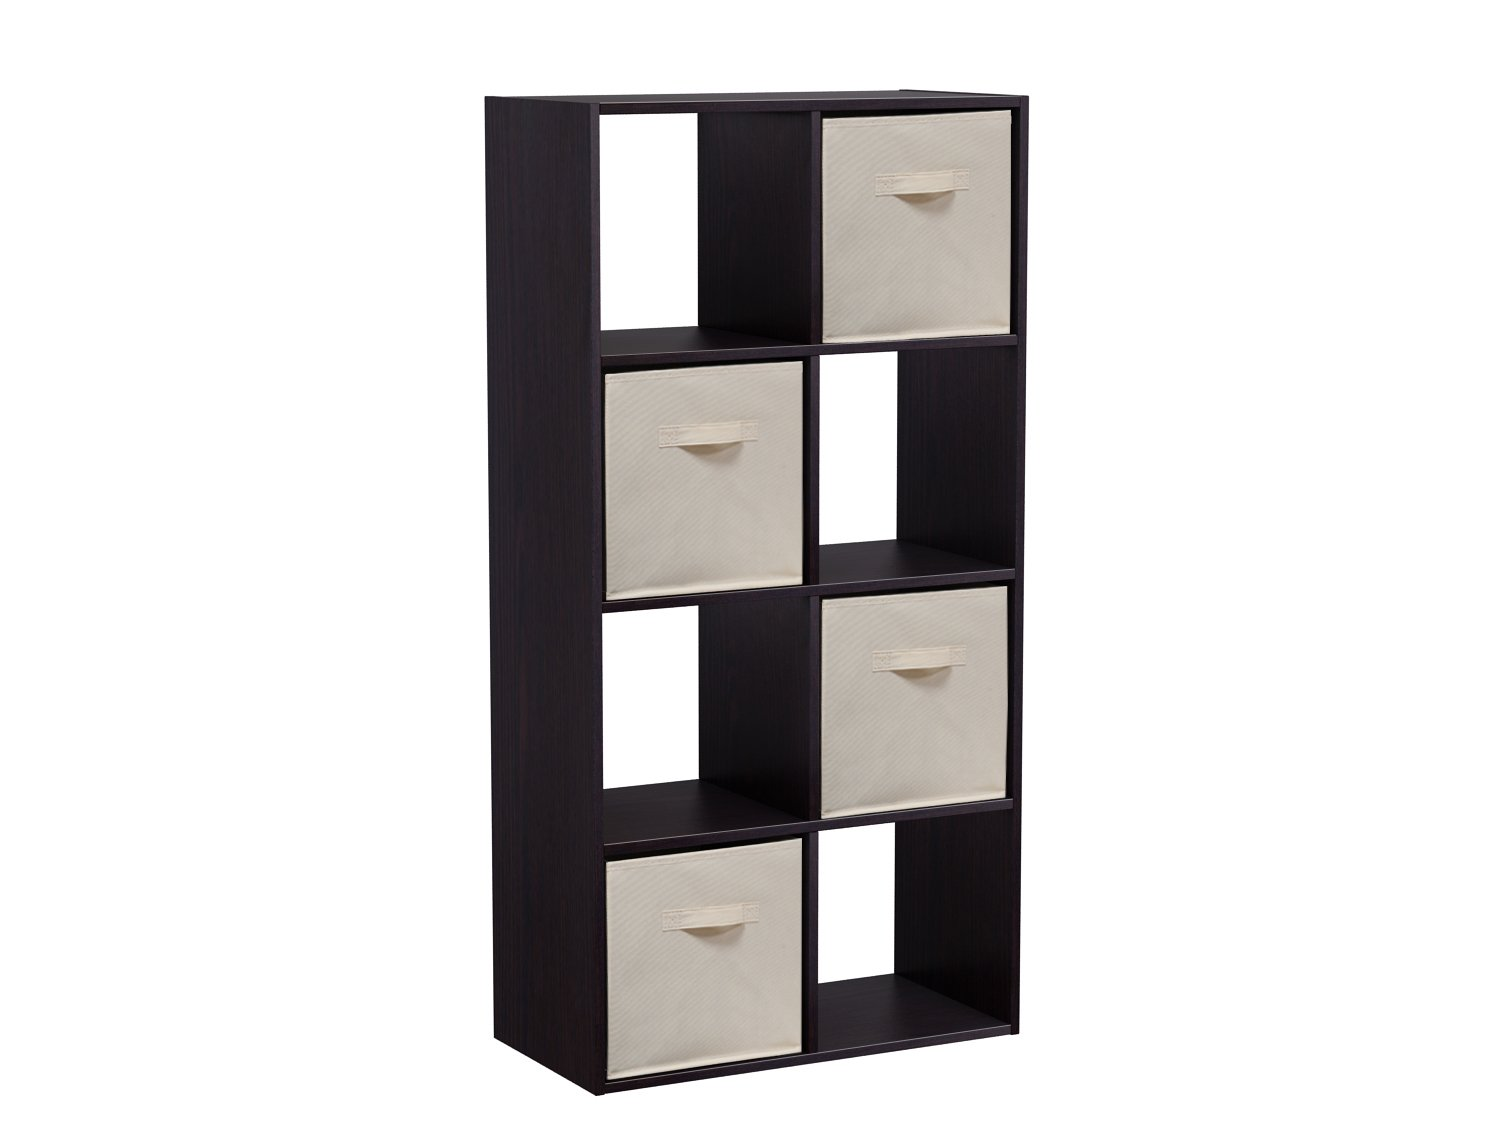 Homestar 8 Cube with Fabric Bins, Black Brown by Home Star (Image #2)